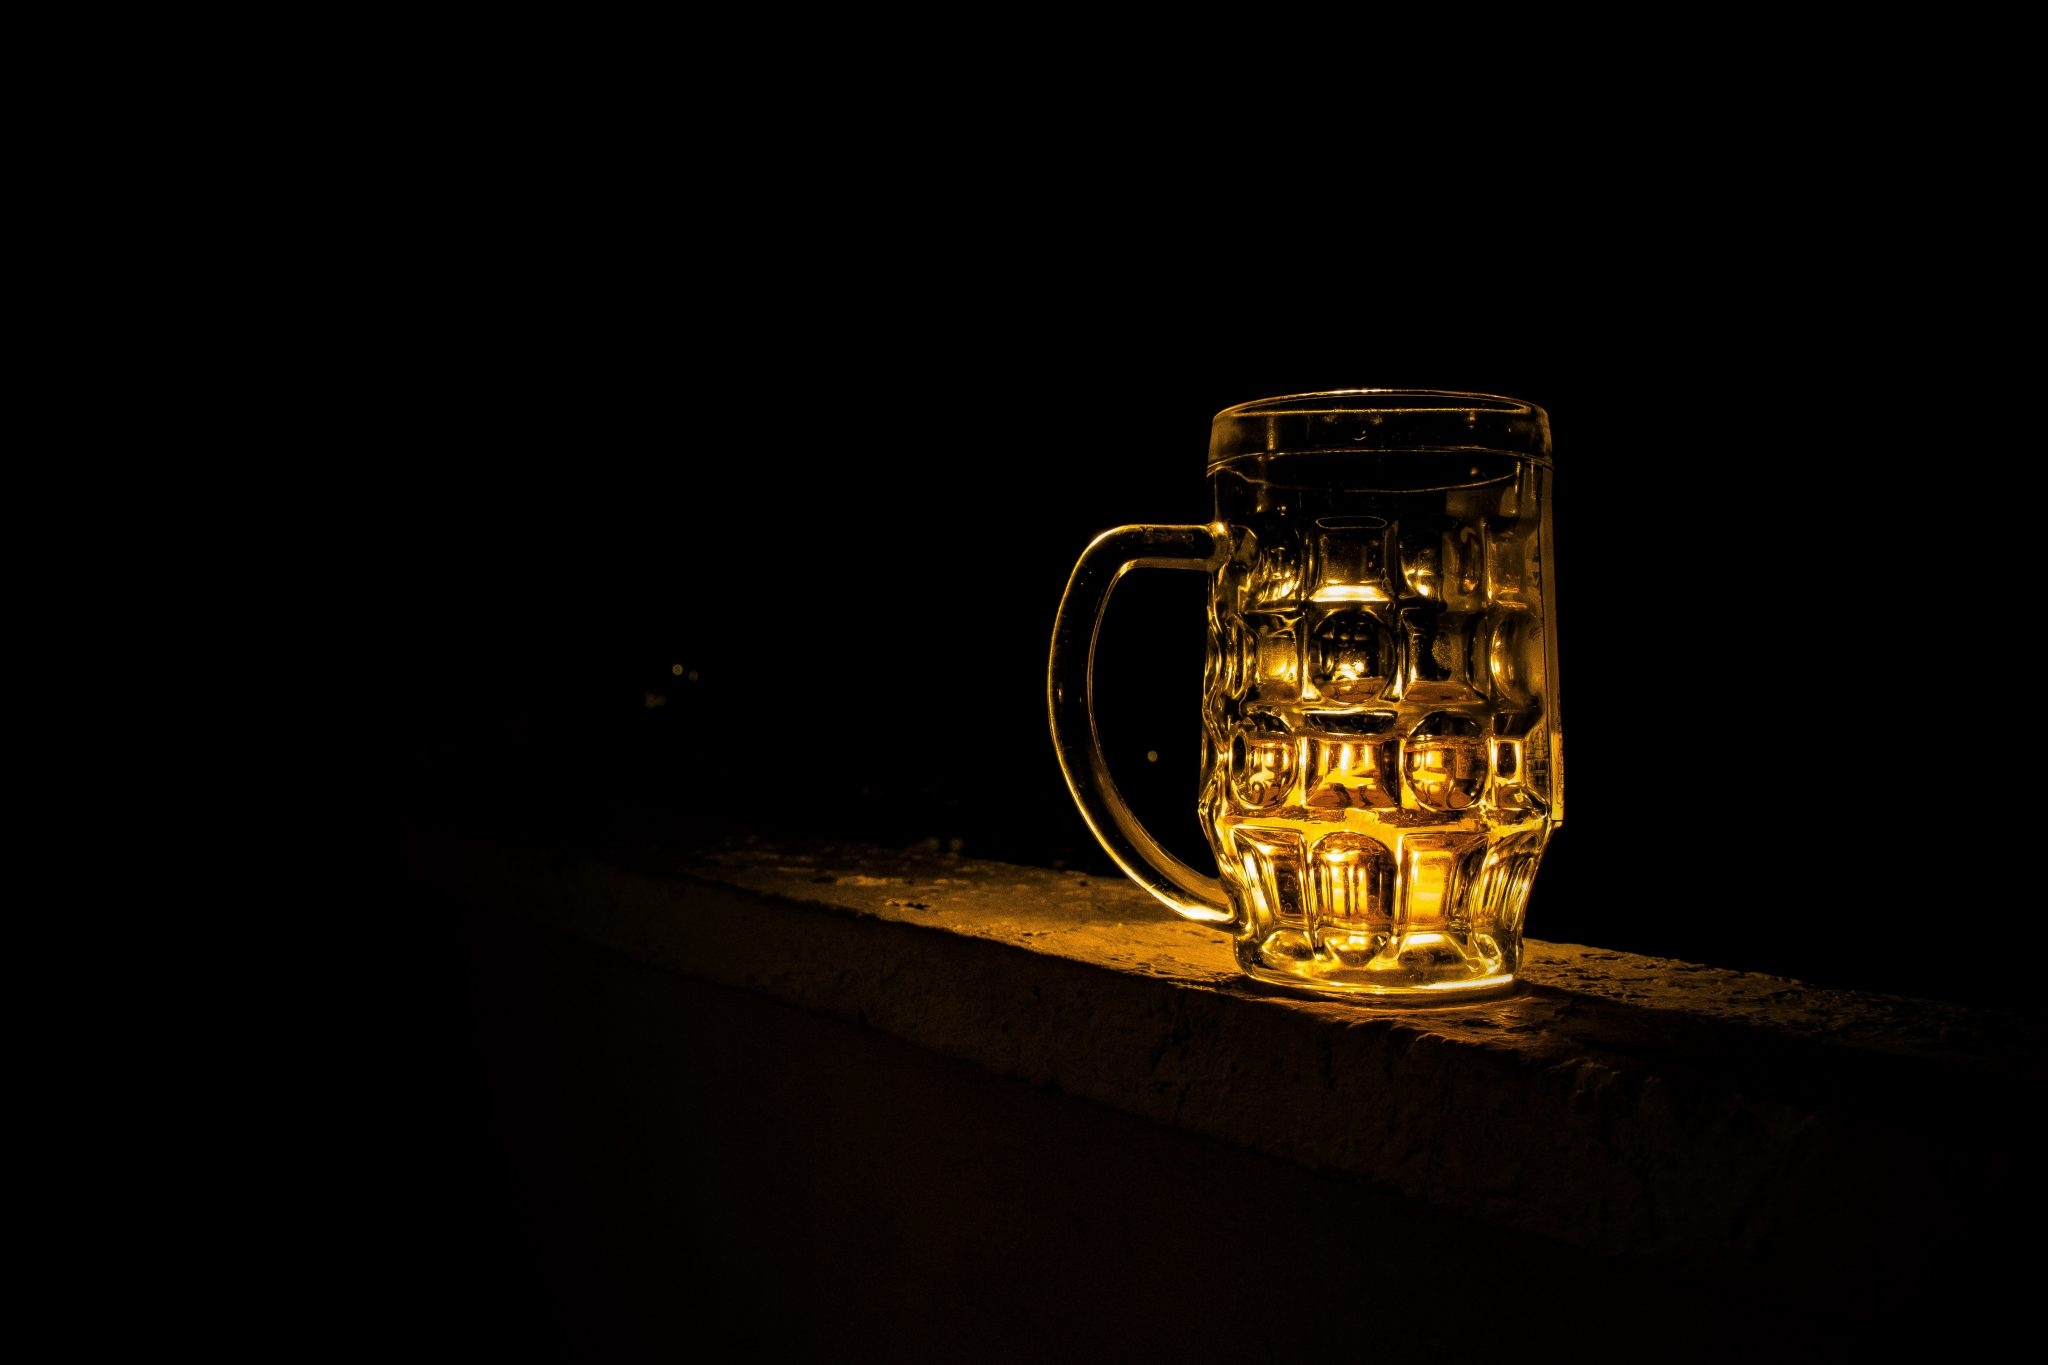 Glass of beer against a black backdrop